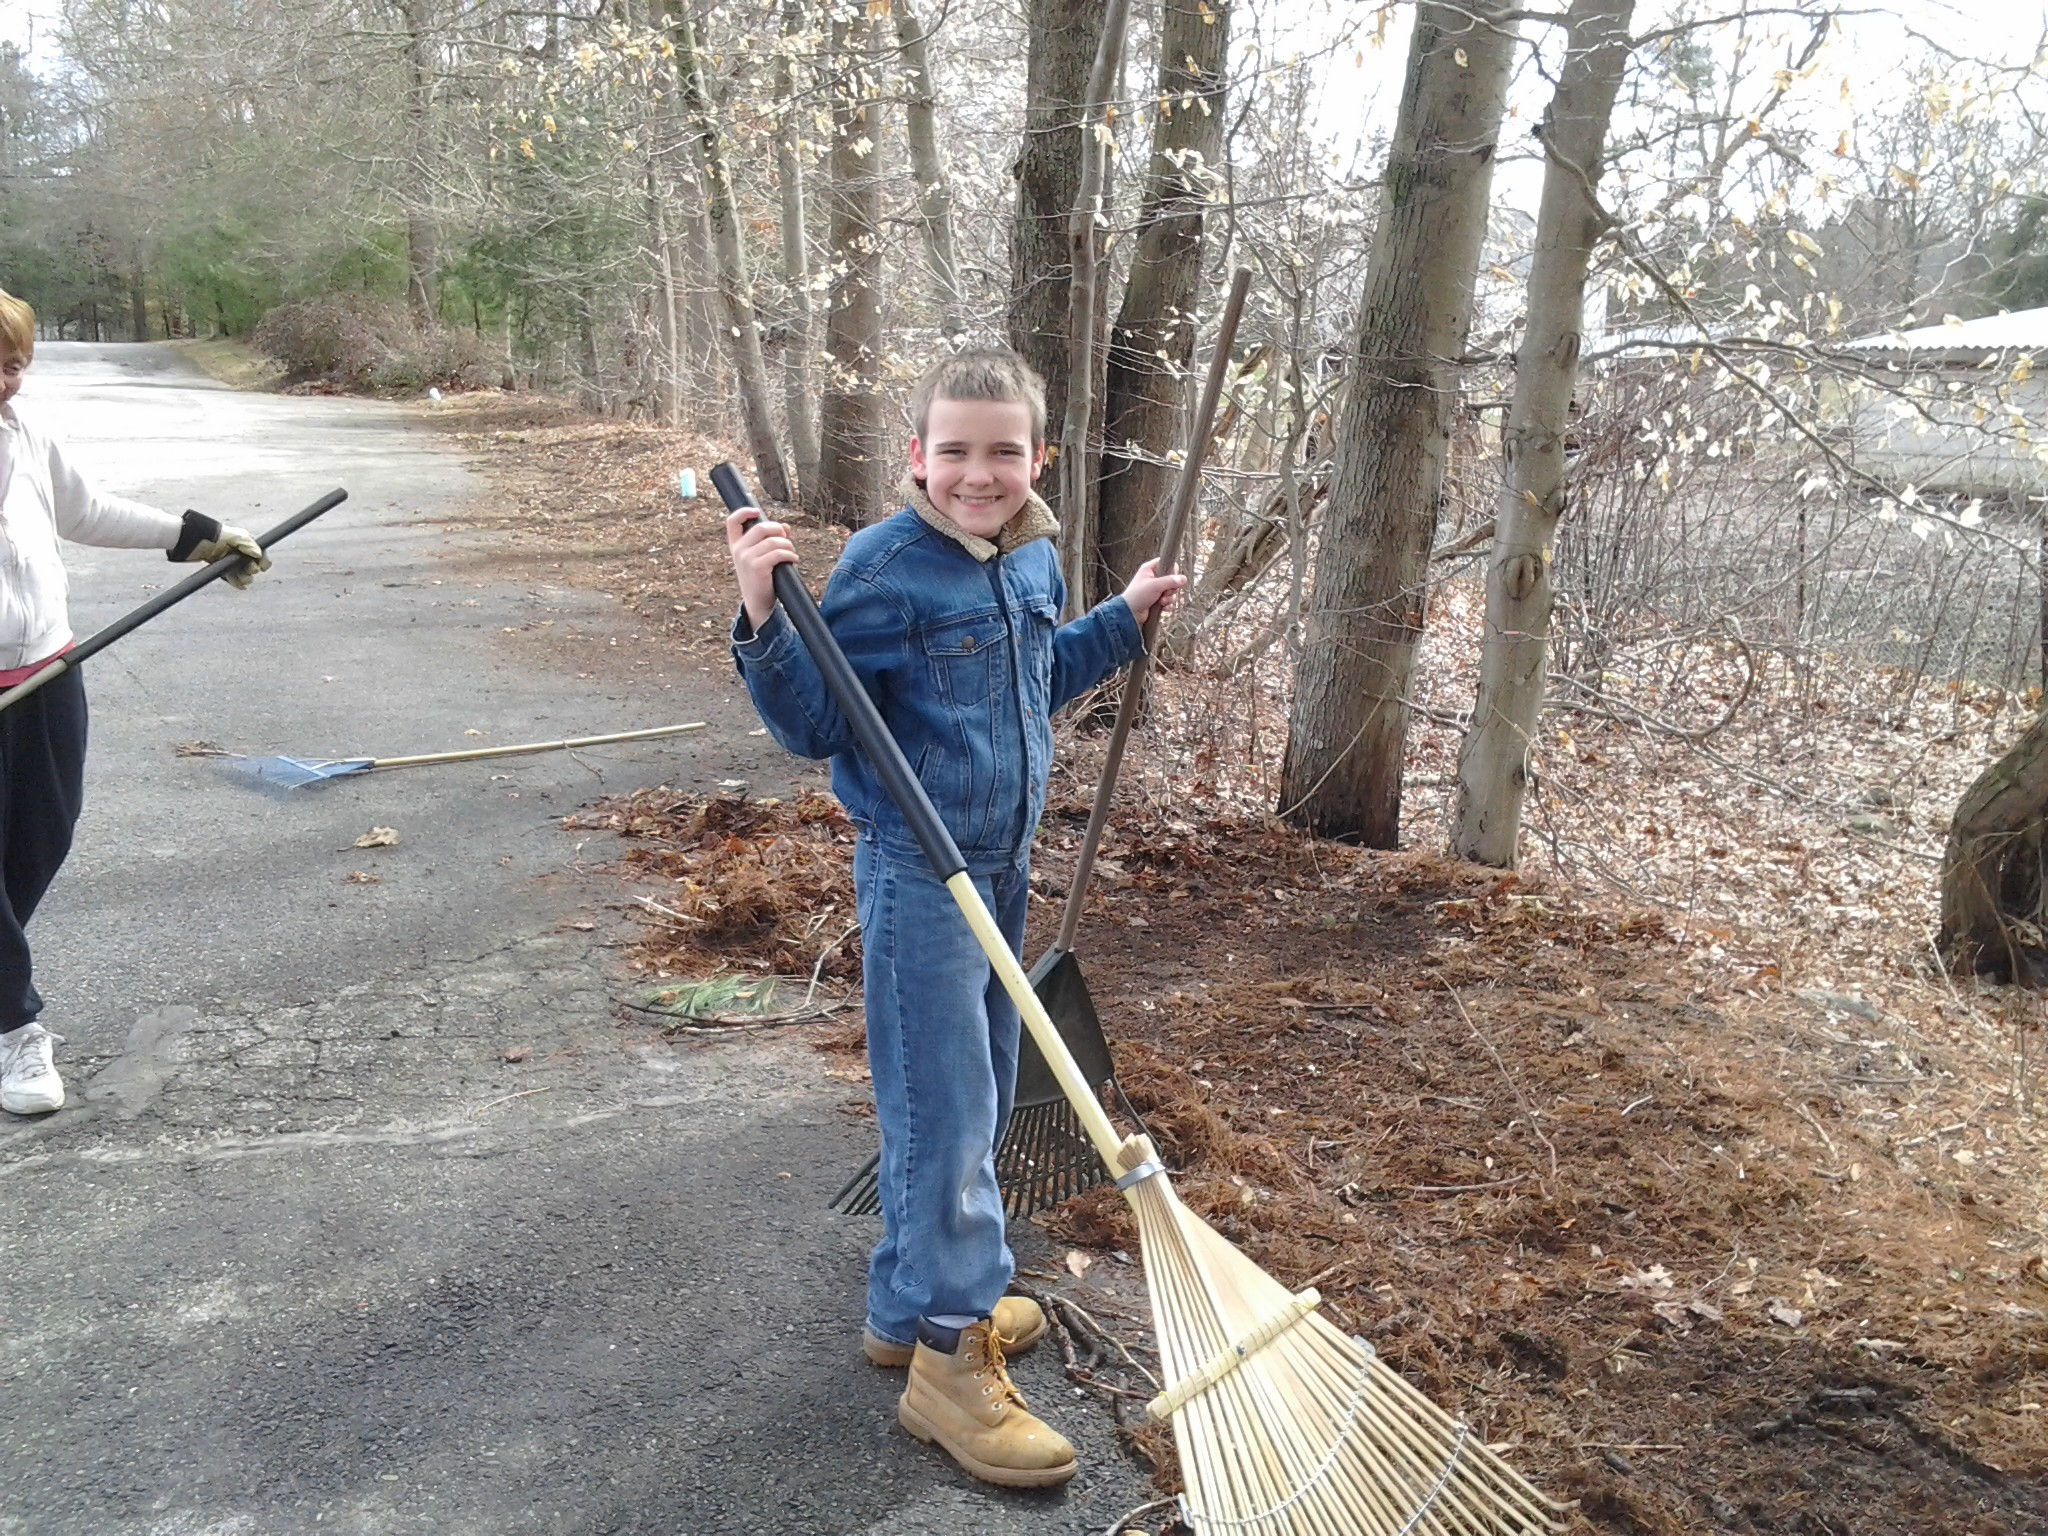 M raking leaves with two rakes at church workday